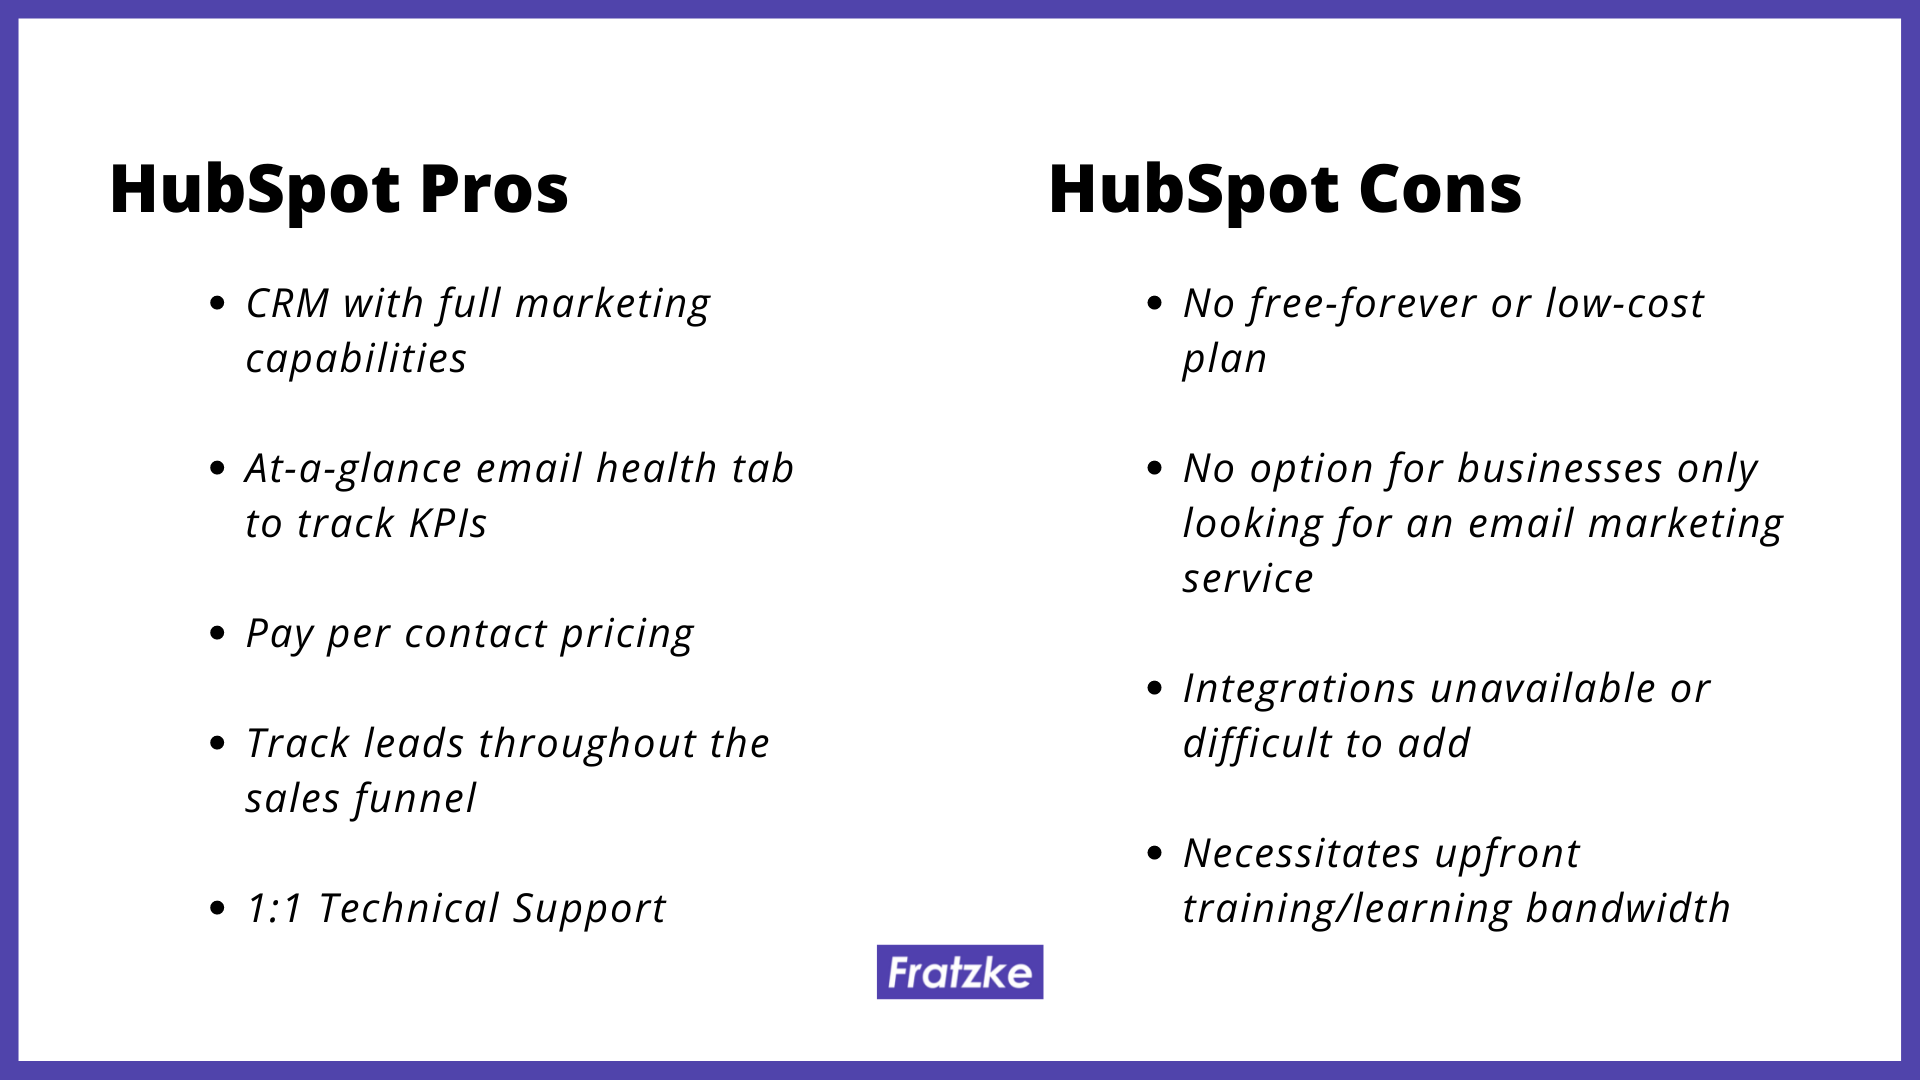 HubSpot pros and cons by Fratzke